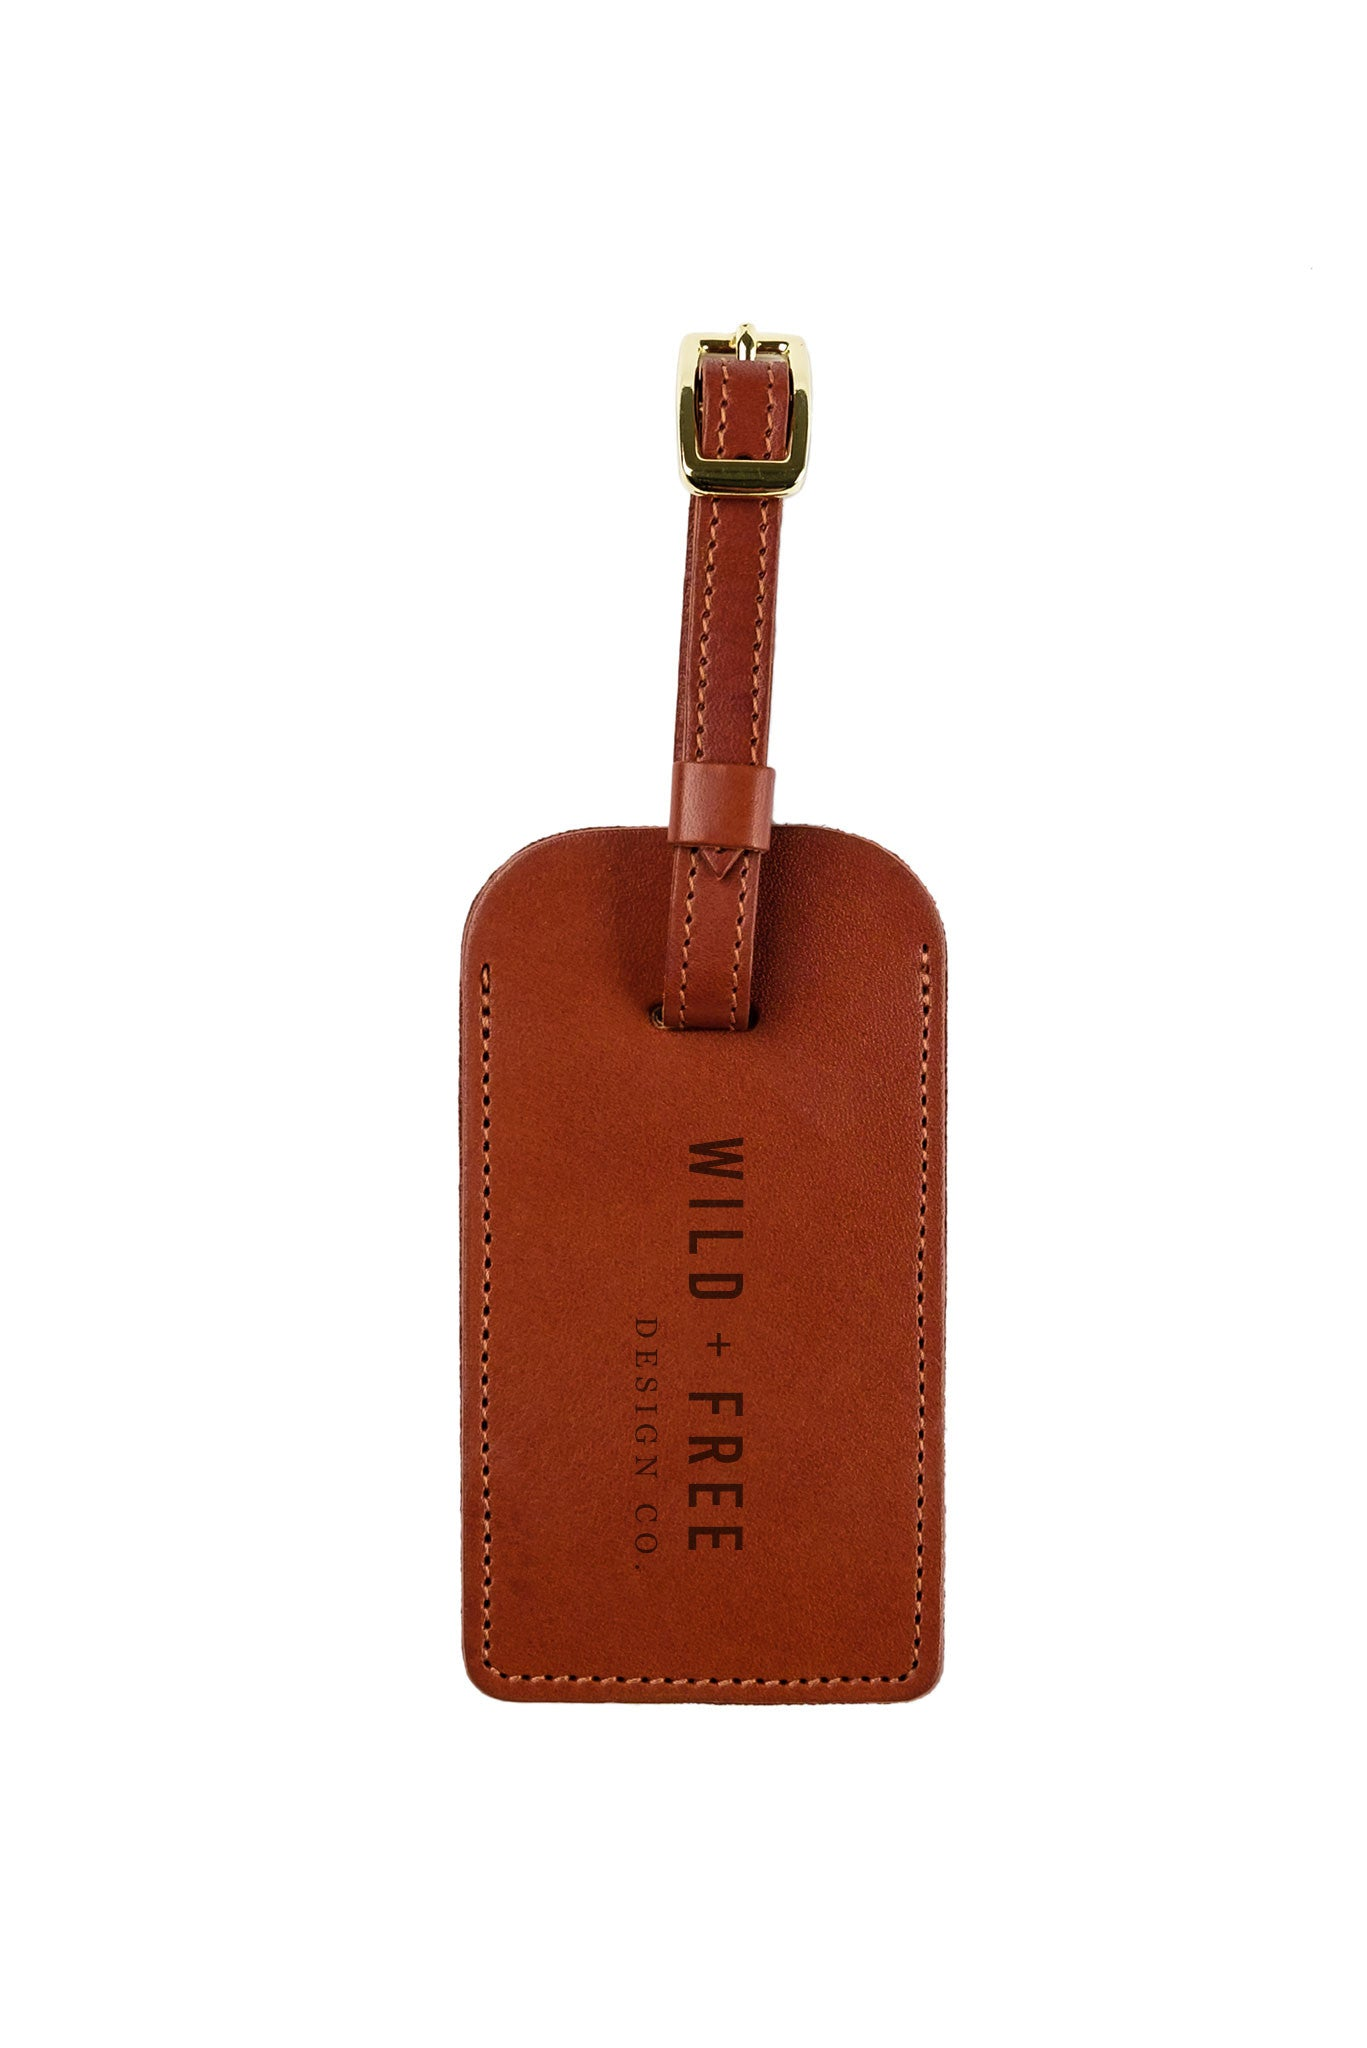 FOTO | Cognac Leather Luggage Tag for her - genuine leather luggage tag that can be personalized with gold foil initials, a monogram or business logo making it the perfect personalized travel gift.